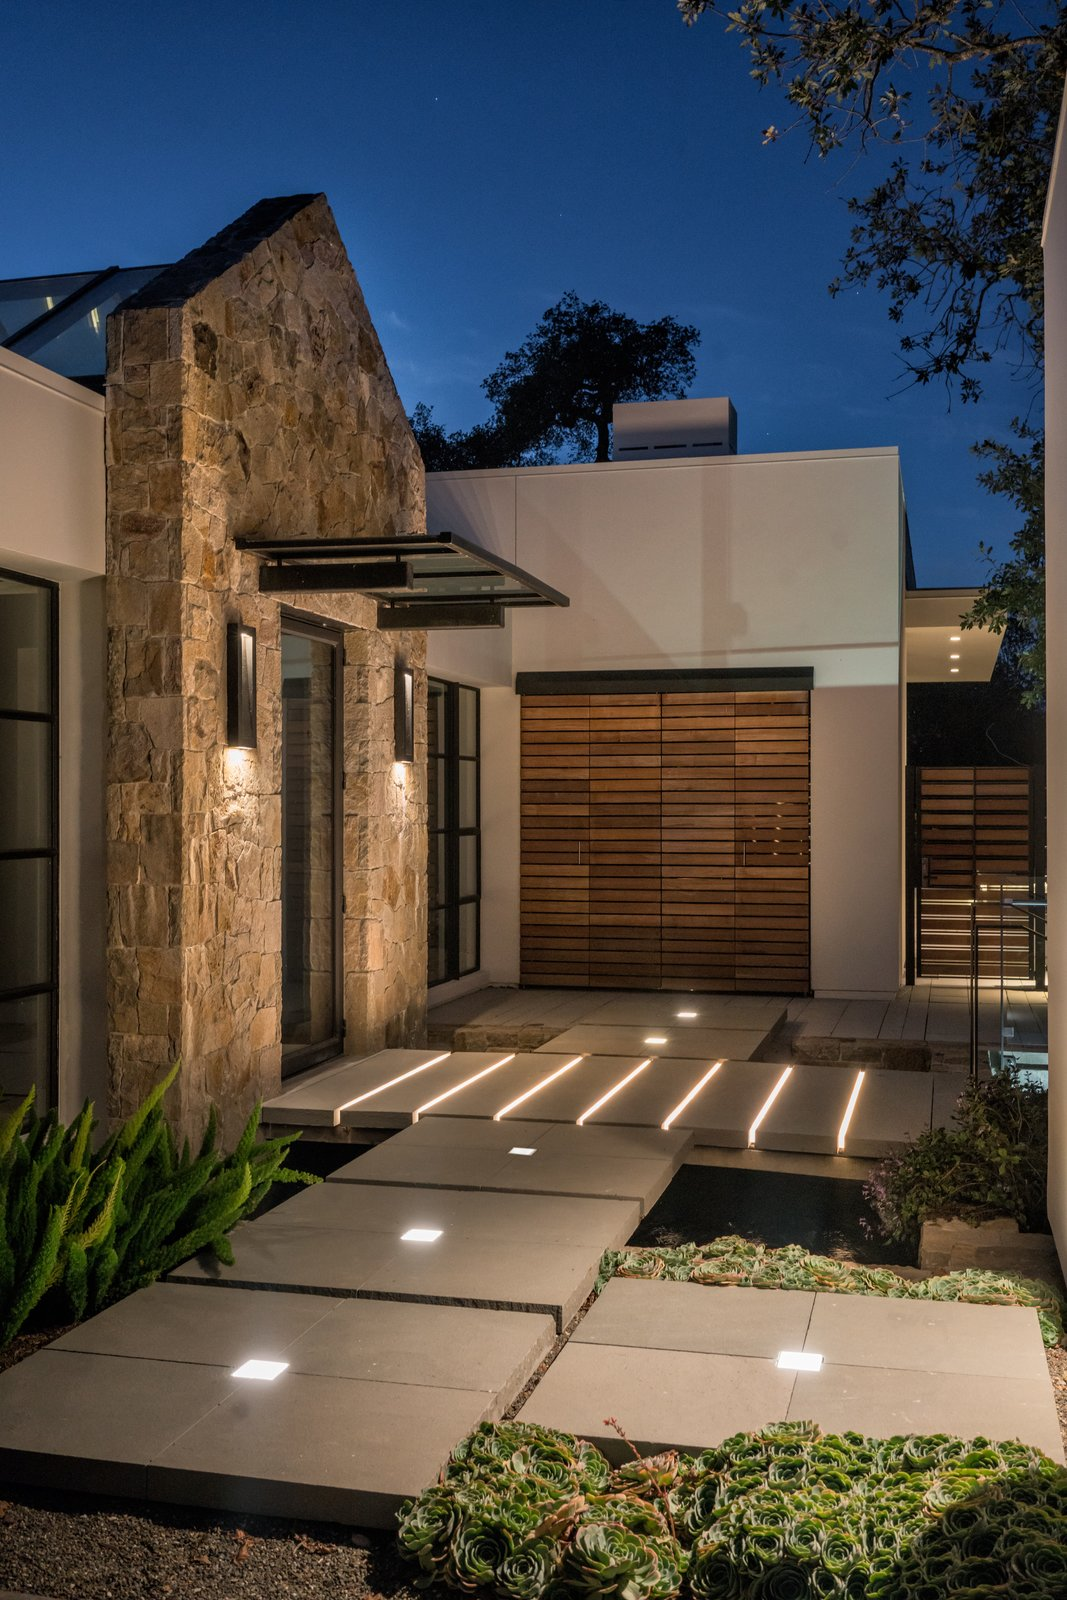 Innovative path lighting Tagged: Outdoor, Landscape Lighting, Concrete Patio, Porch, Deck, Horizontal Fences, Wall, Wood Fences, Wall, Hardscapes, Shrubs, Garden, and Walkways.  Hilltop Haven by Randy Thueme Design